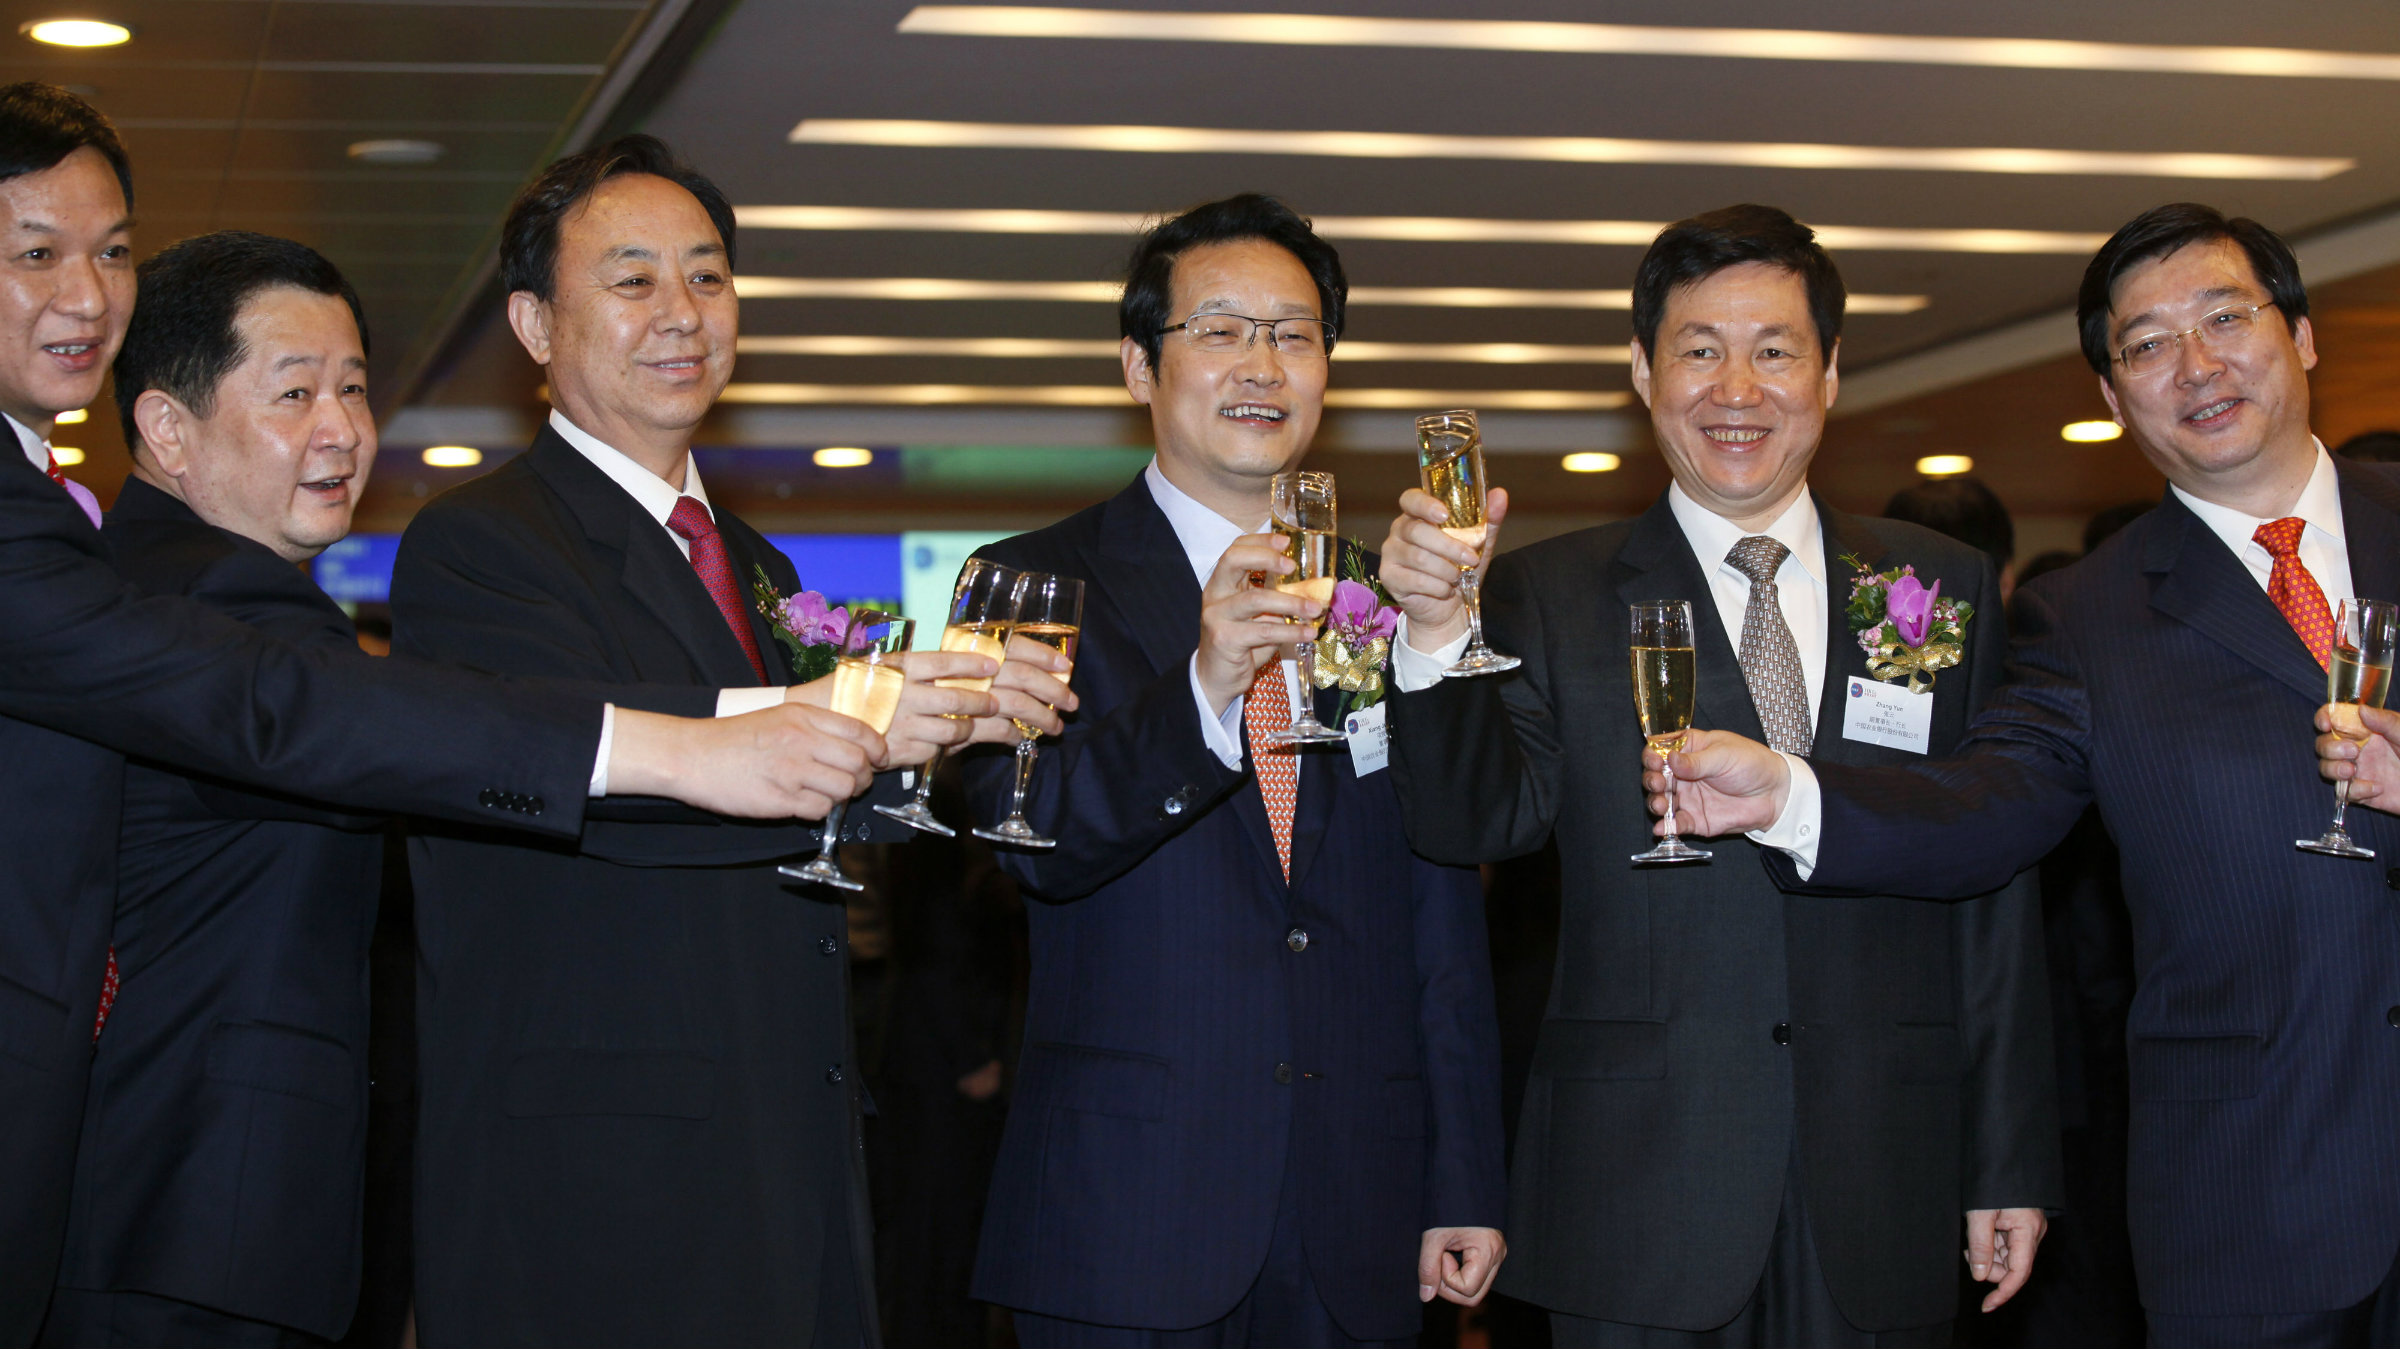 Who needs women? Agricultural Bank of China's officials celebrate their HKSE listing.